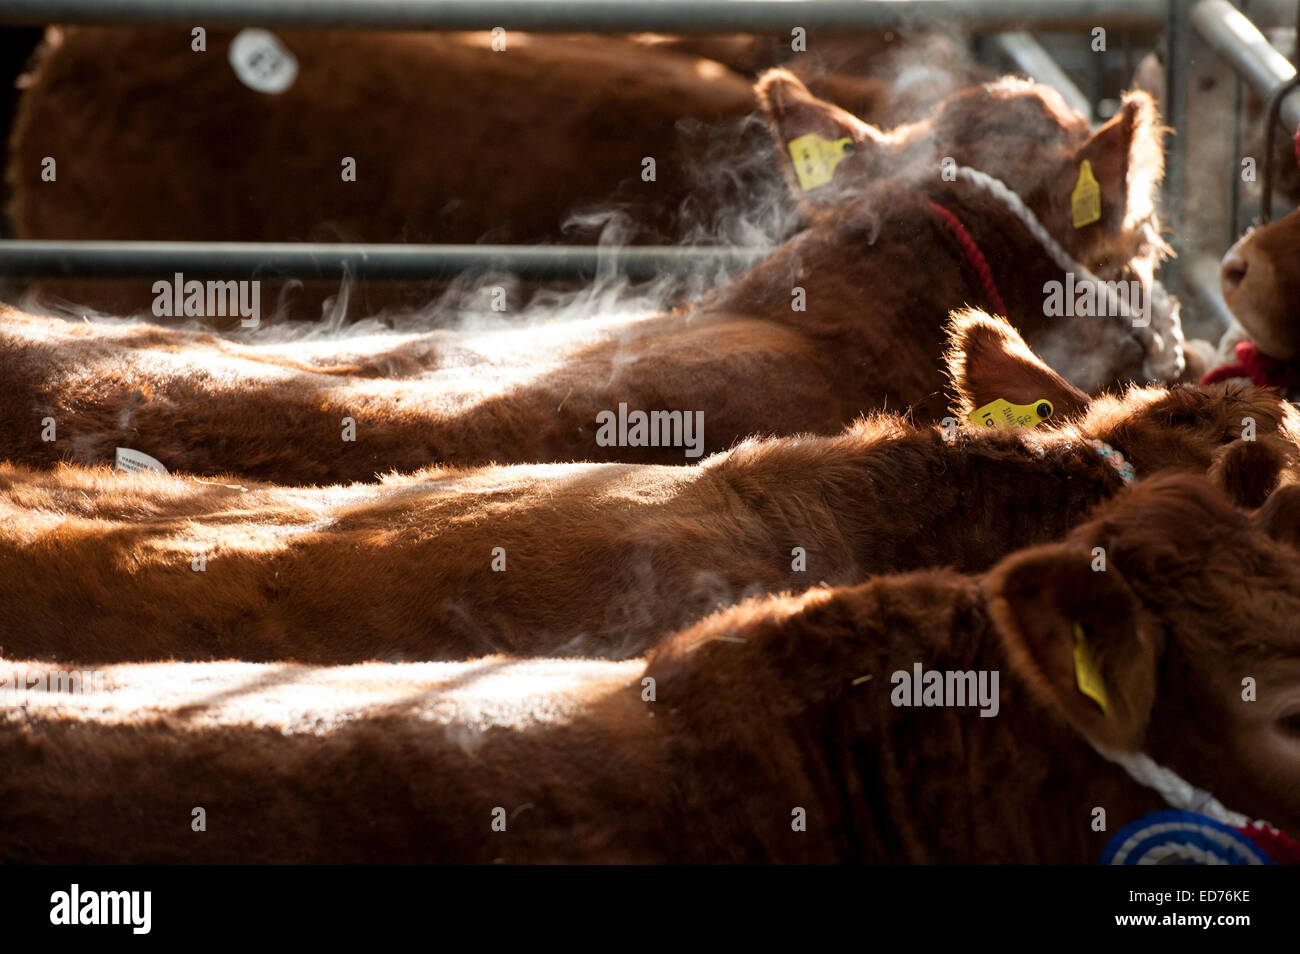 Limousin cattle in pens, steaming. UK - Stock Image